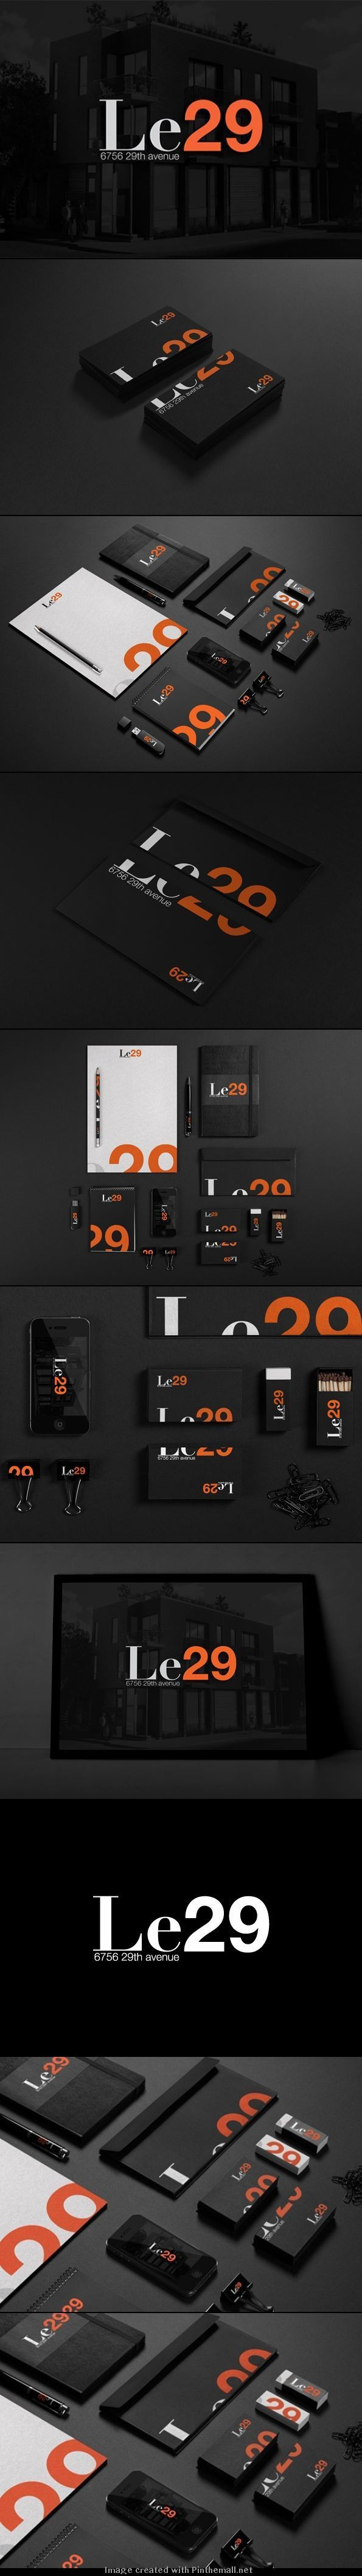 Graphic design: 25 quality projects based on visual identities and branding   BlogDuWebdesign